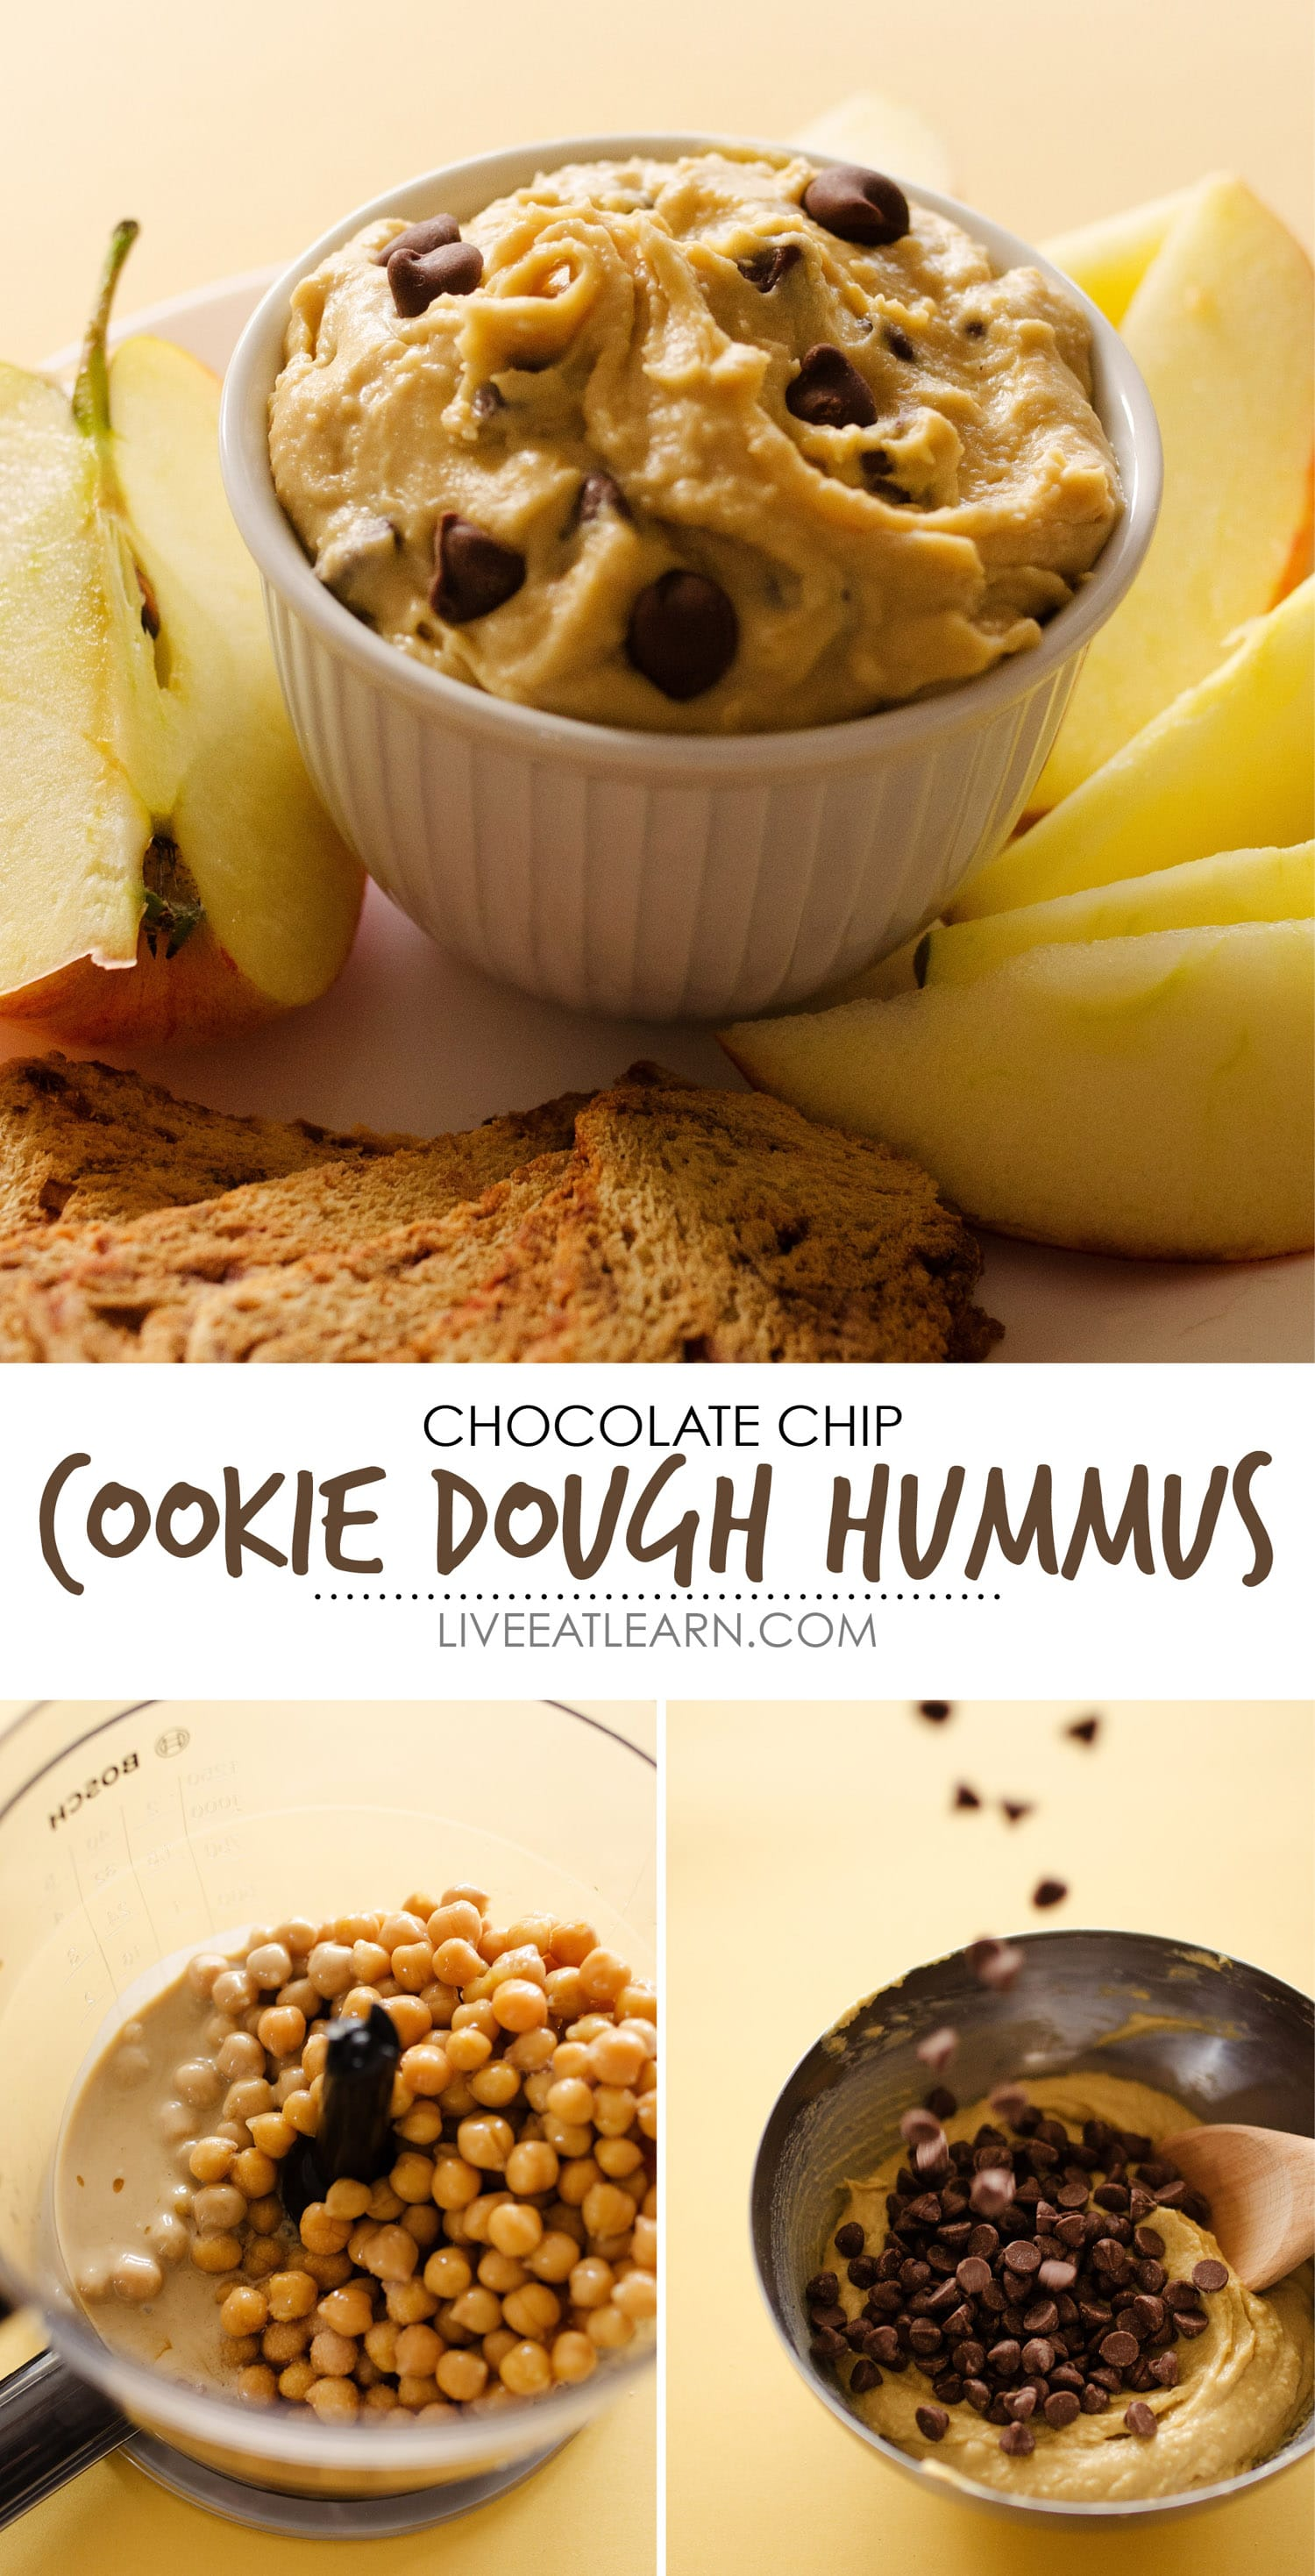 This Chocolate Chip Cookie Dough Dessert Hummus recipe is a fast, healthy, and gluten-free way to indulge in your cookie dough craving! Packed with chickpea protein and tahini, indulgent white chocolate, and sprinkled with chocolate chips, this is a gluten-free dessert or snack that is the perfect healthy sweet tooth remedy.